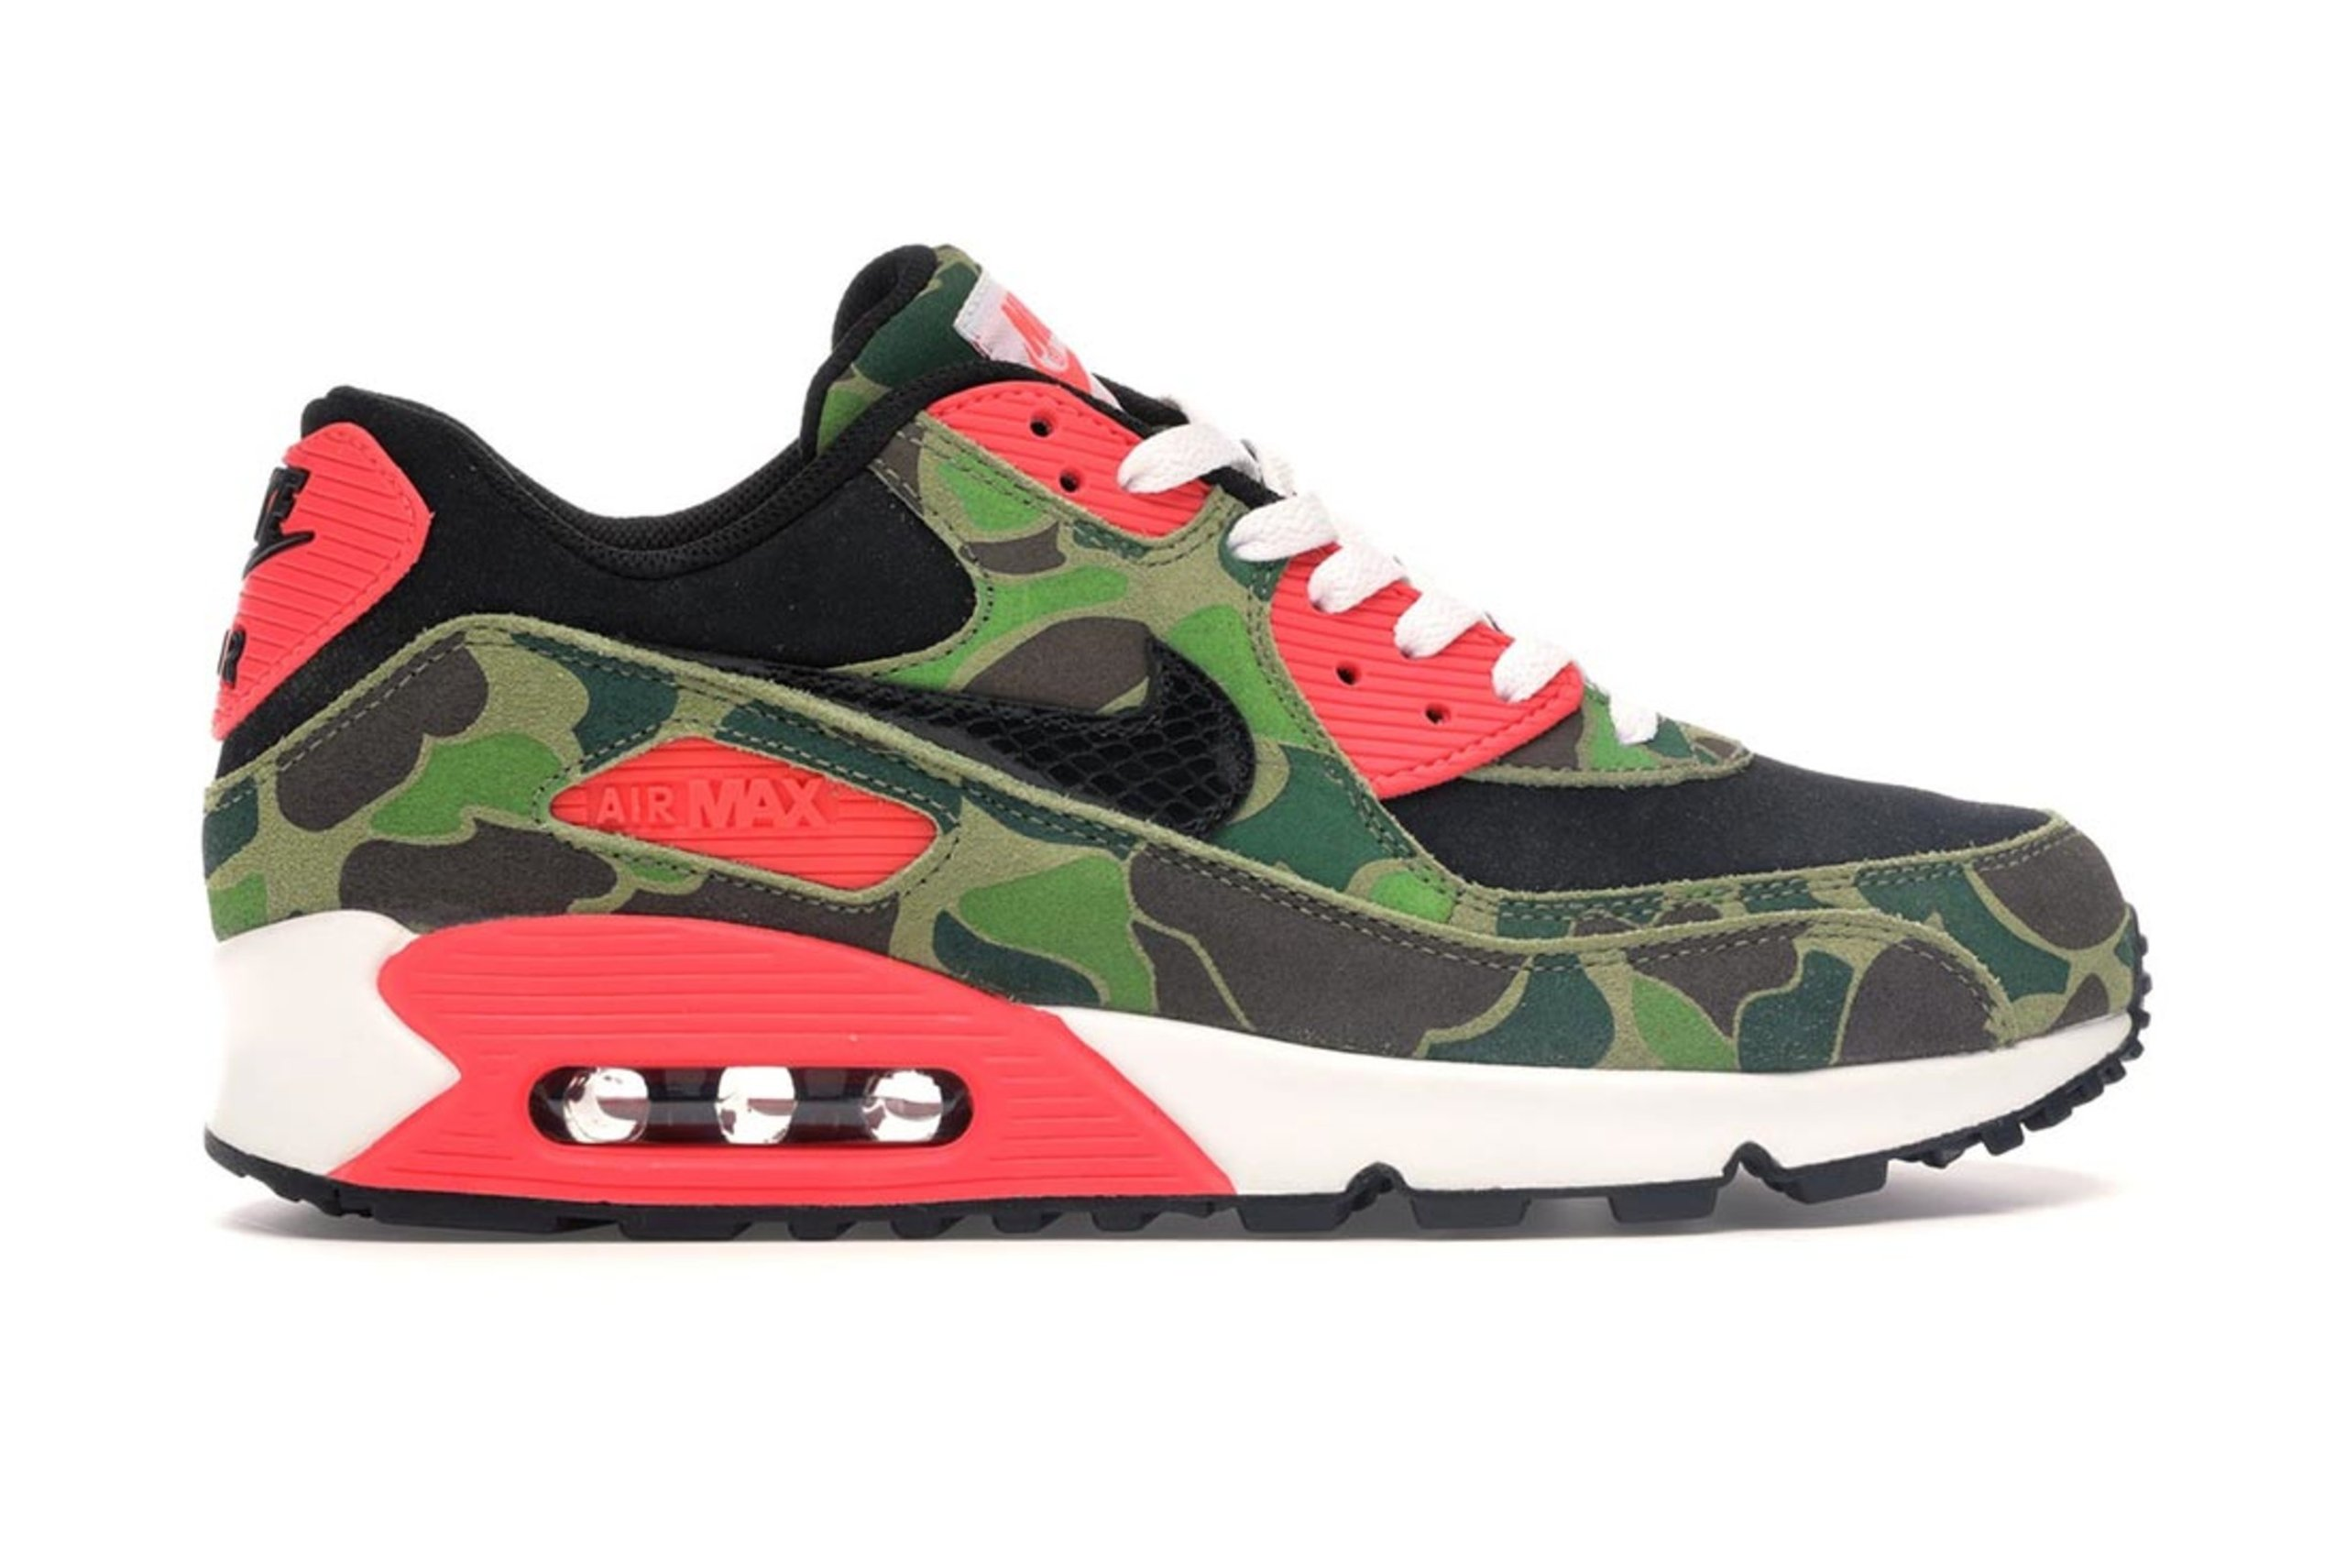 fdb466828b7 Colourway Corral: Air Max 90 'Infrared' THE ICONIC Edition